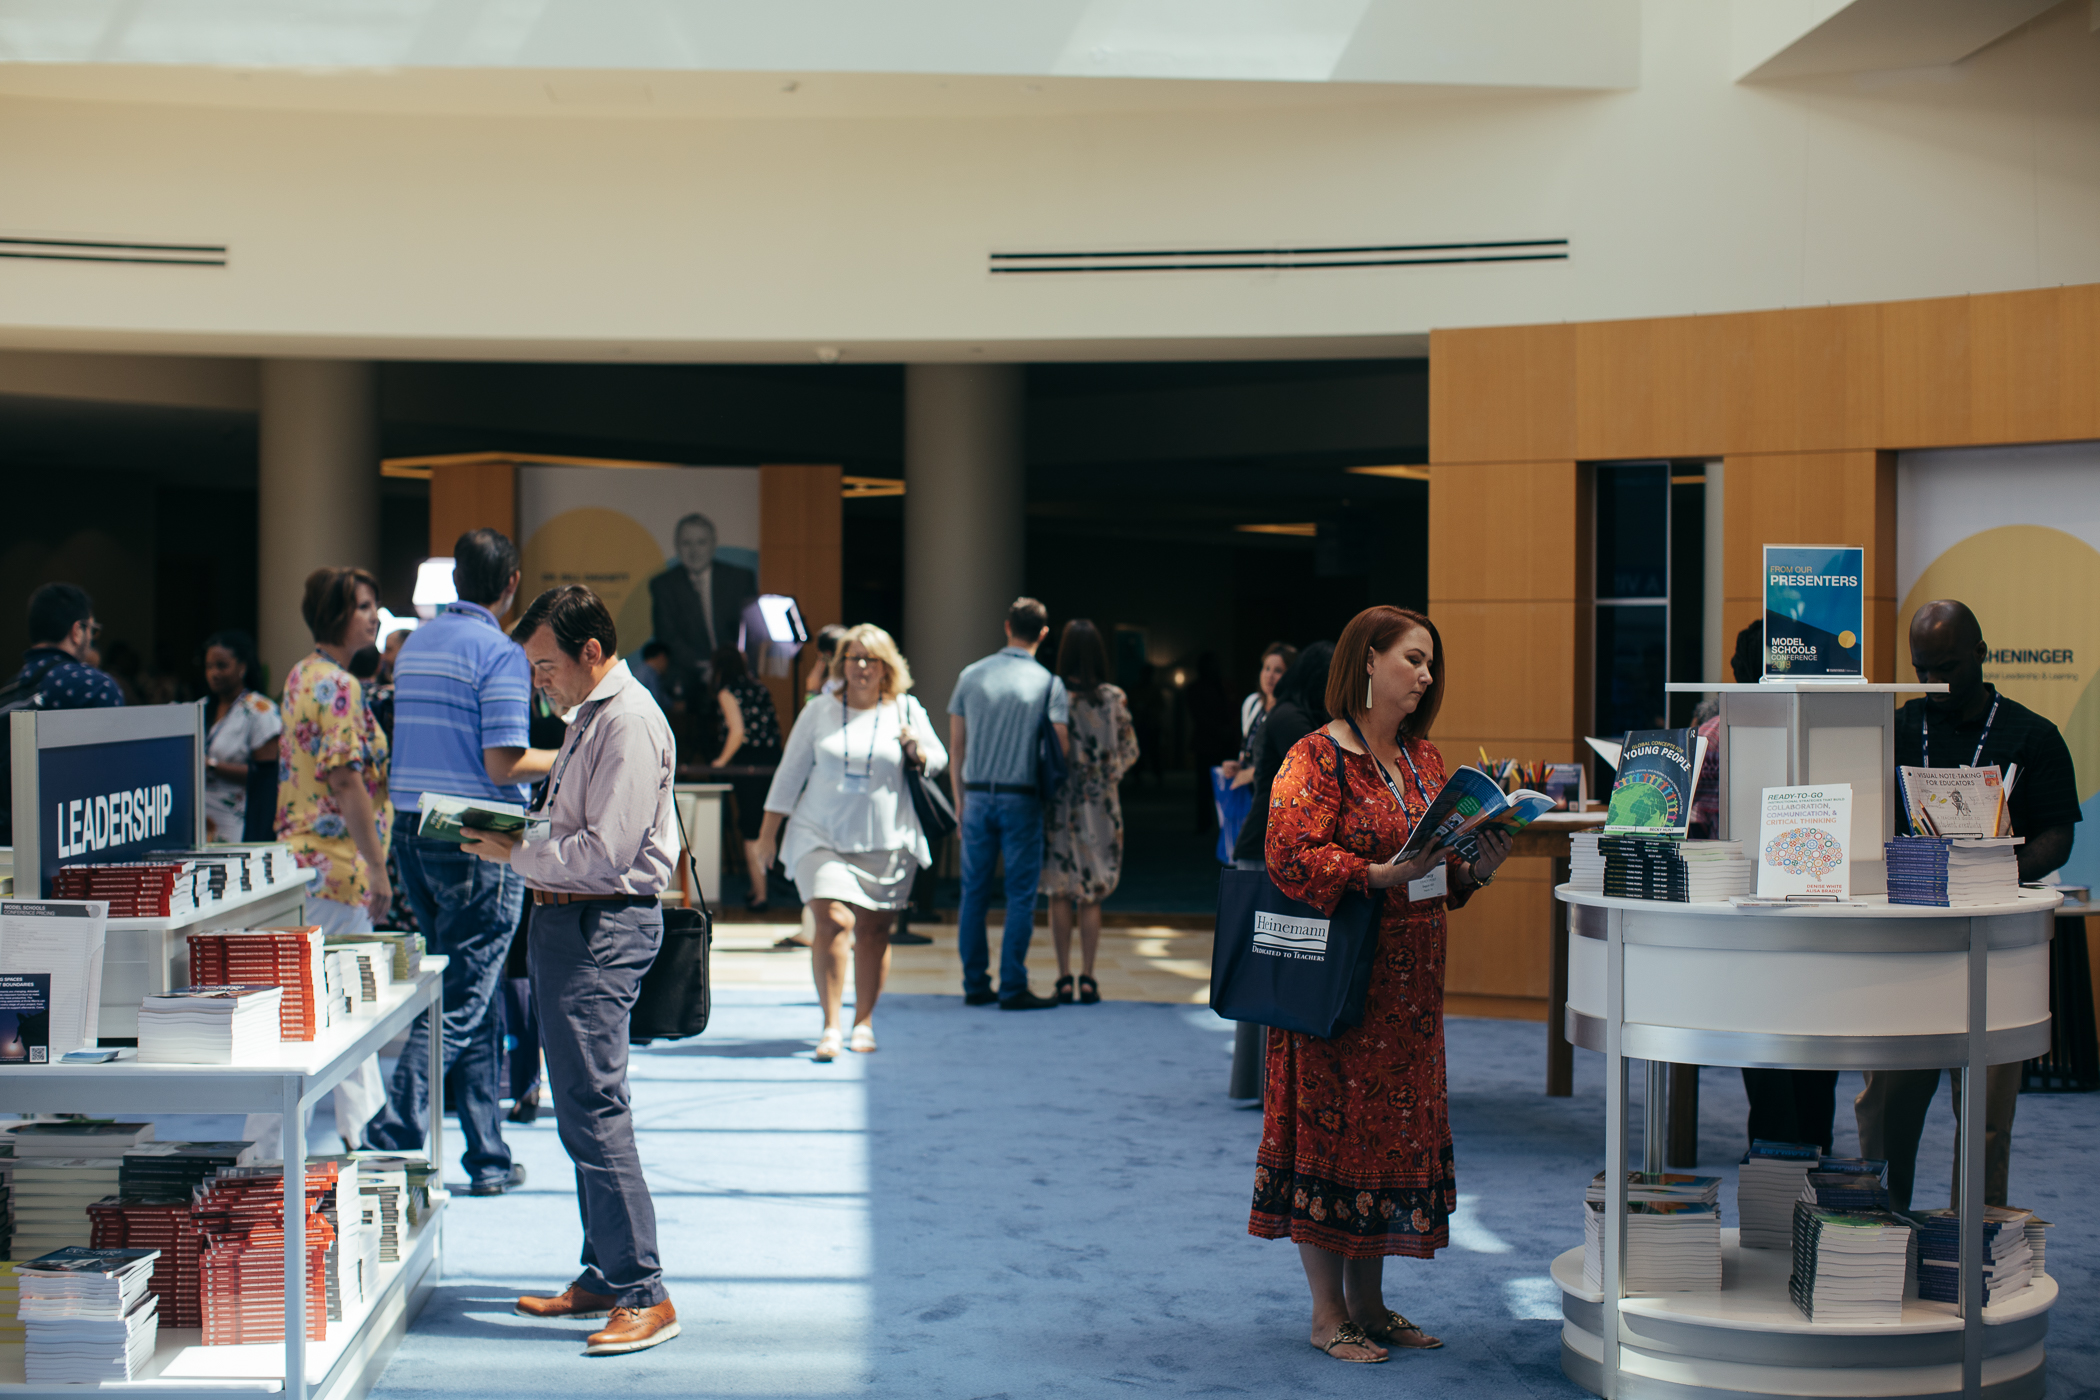 live event commercial photography brand storytelling for education florida conference photographer ©2018abigailbobophotography-60.jpg